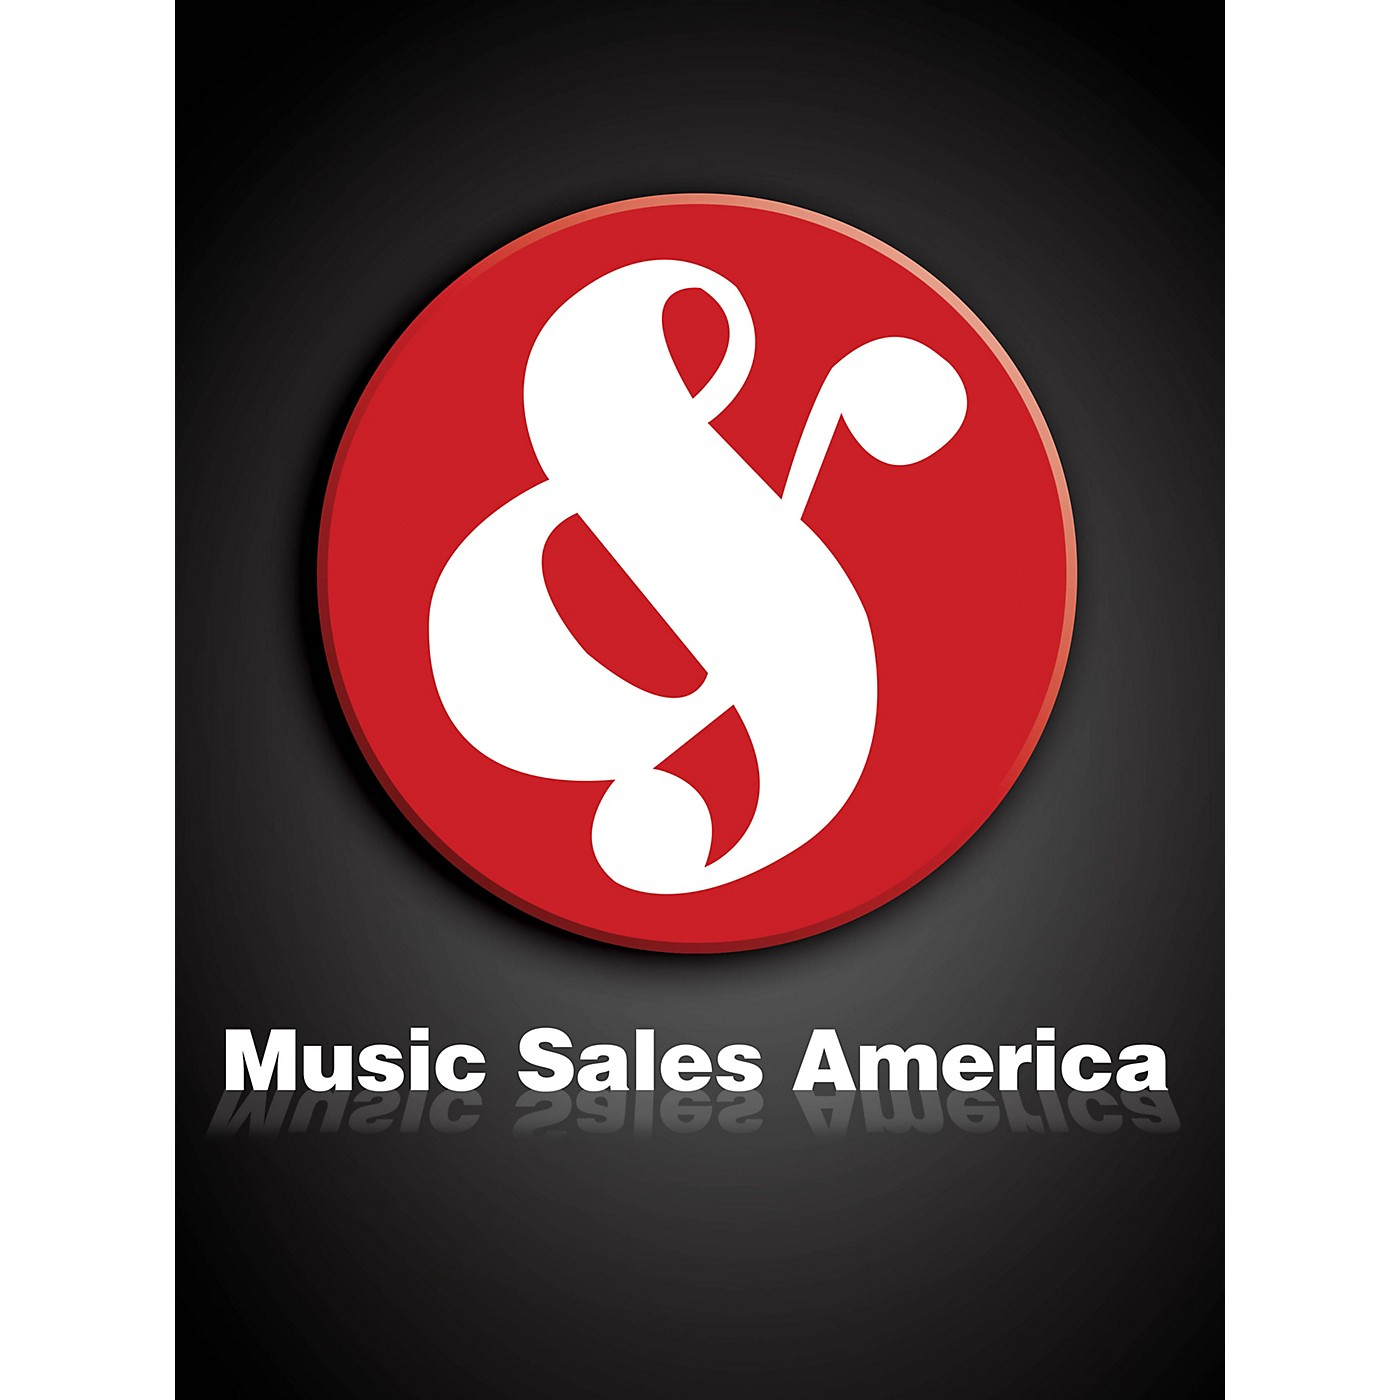 Hal Leonard Piano Quintet Op. 92 (Score and Parts) Music Sales America Series Softcover by Aulis Sallinen thumbnail